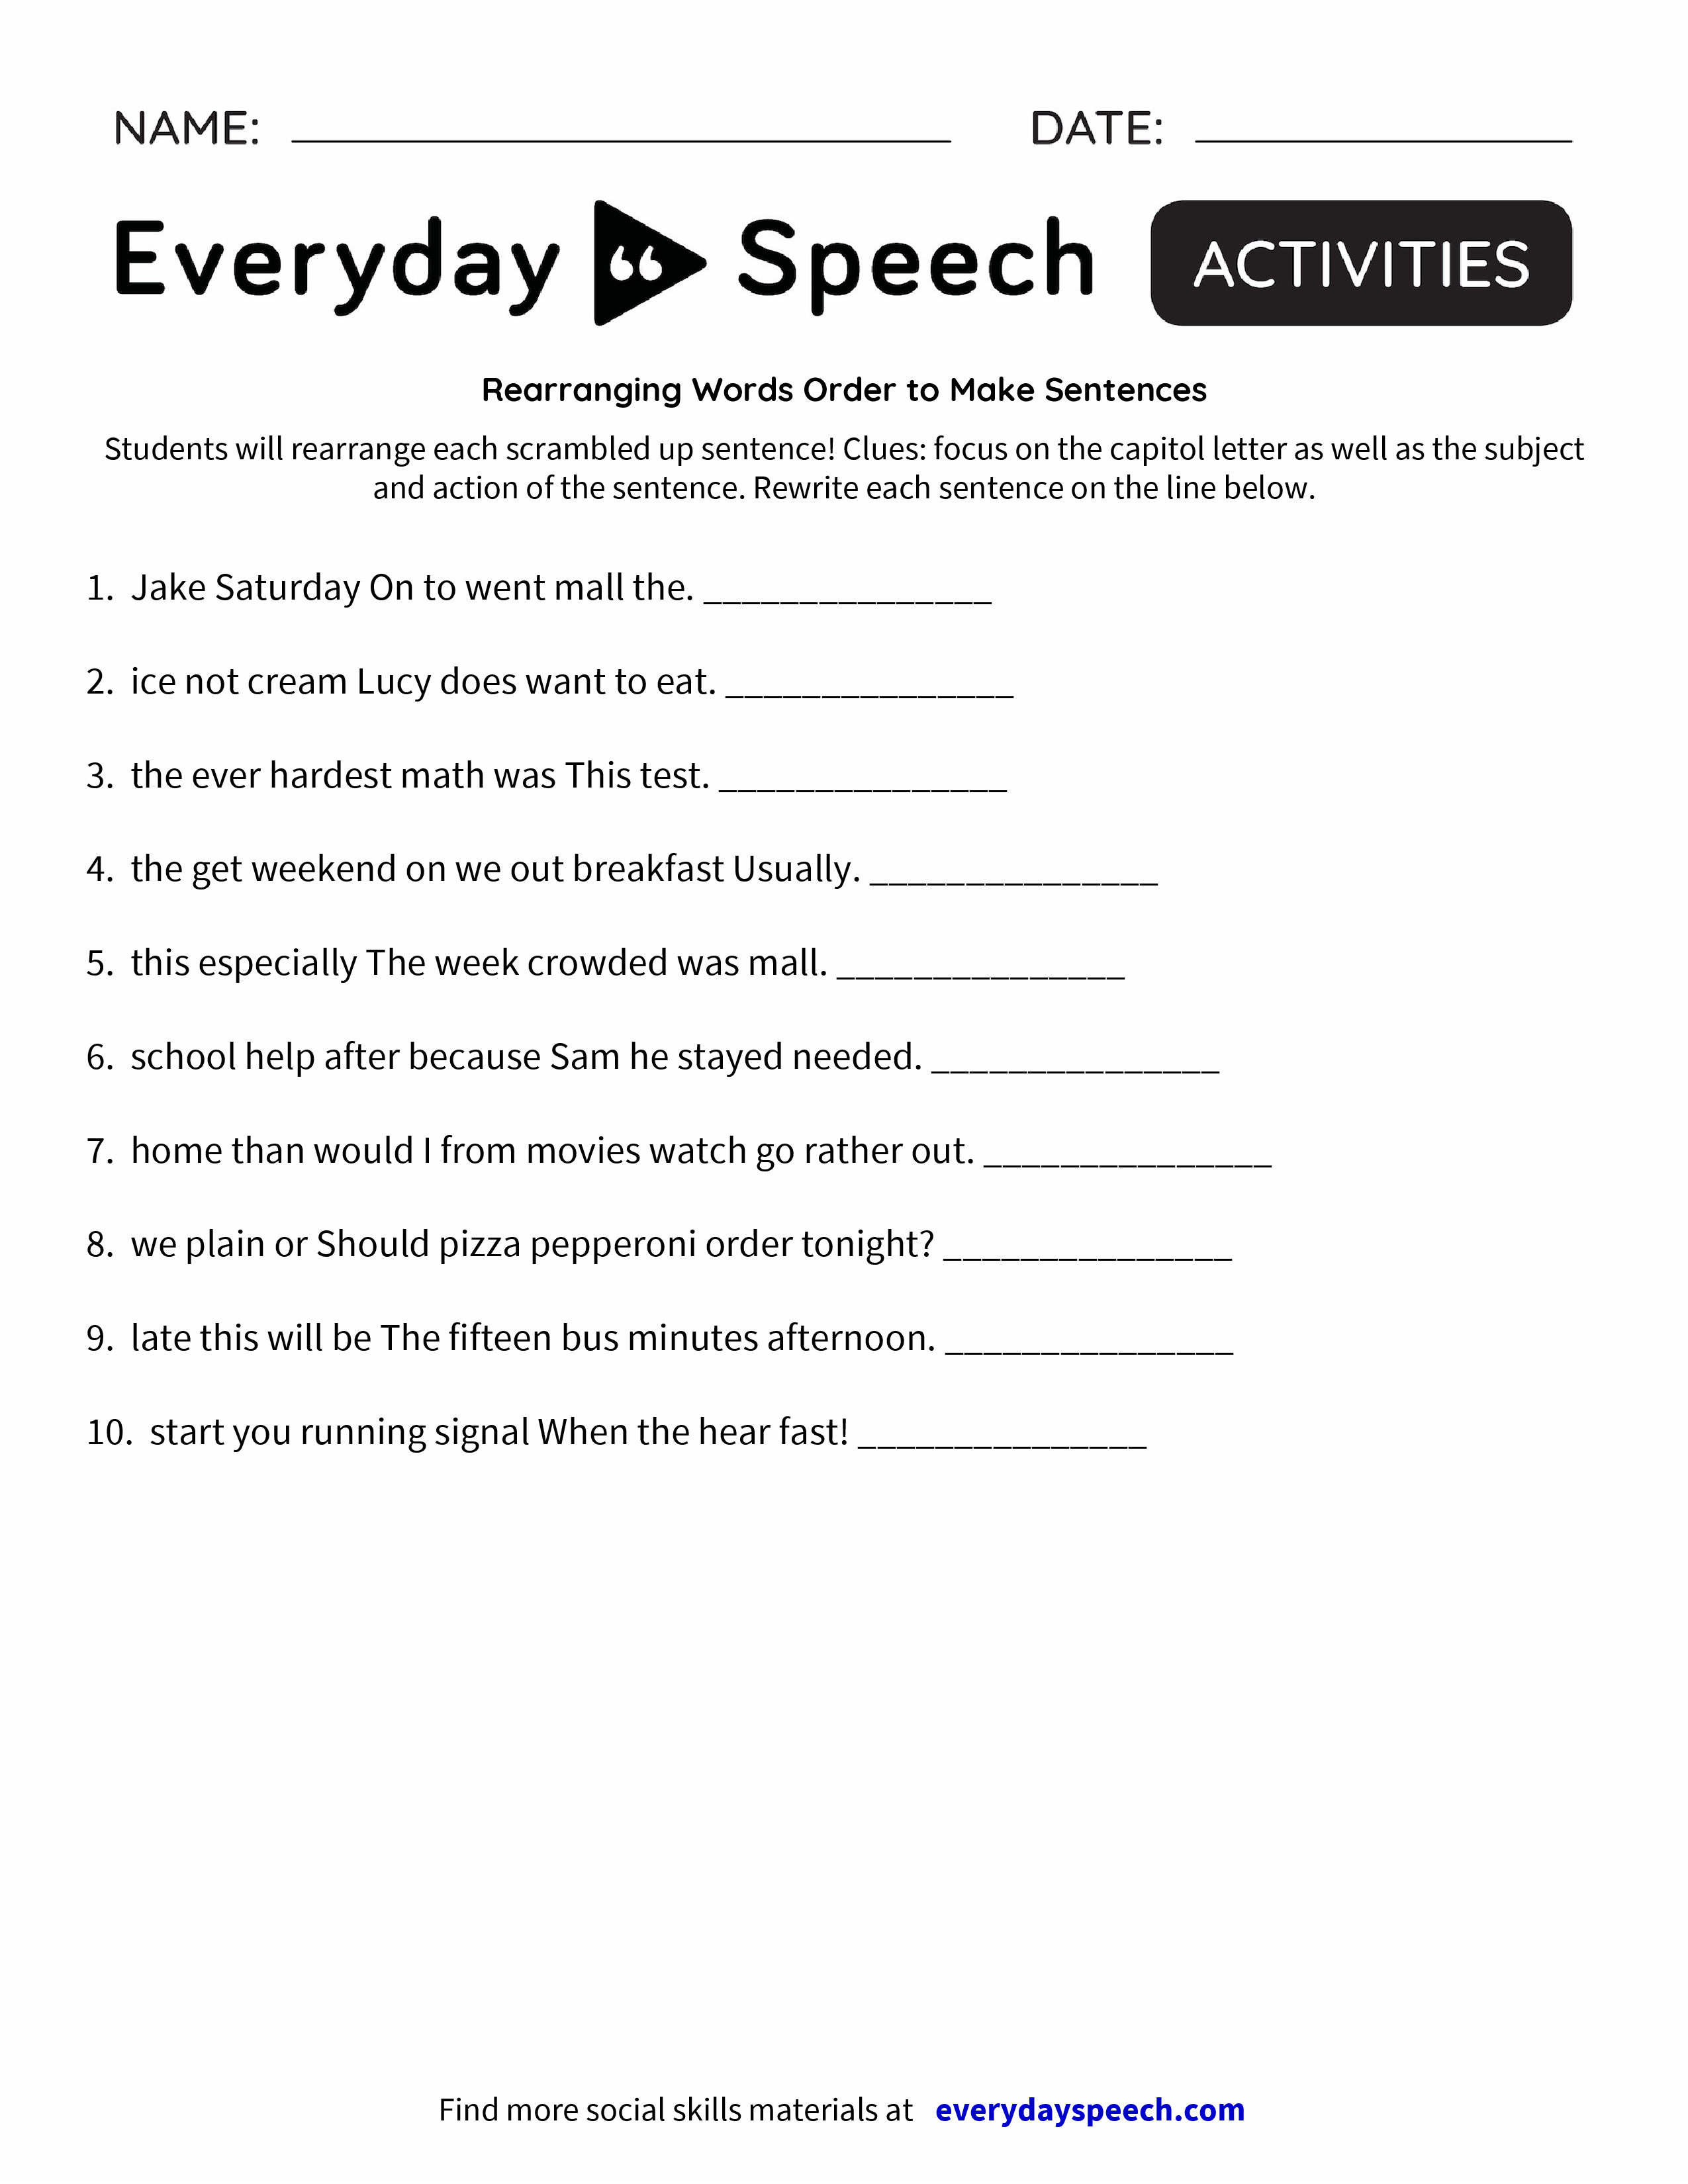 worksheet Rearranging rearranging words order to make sentences everyday speech sentences